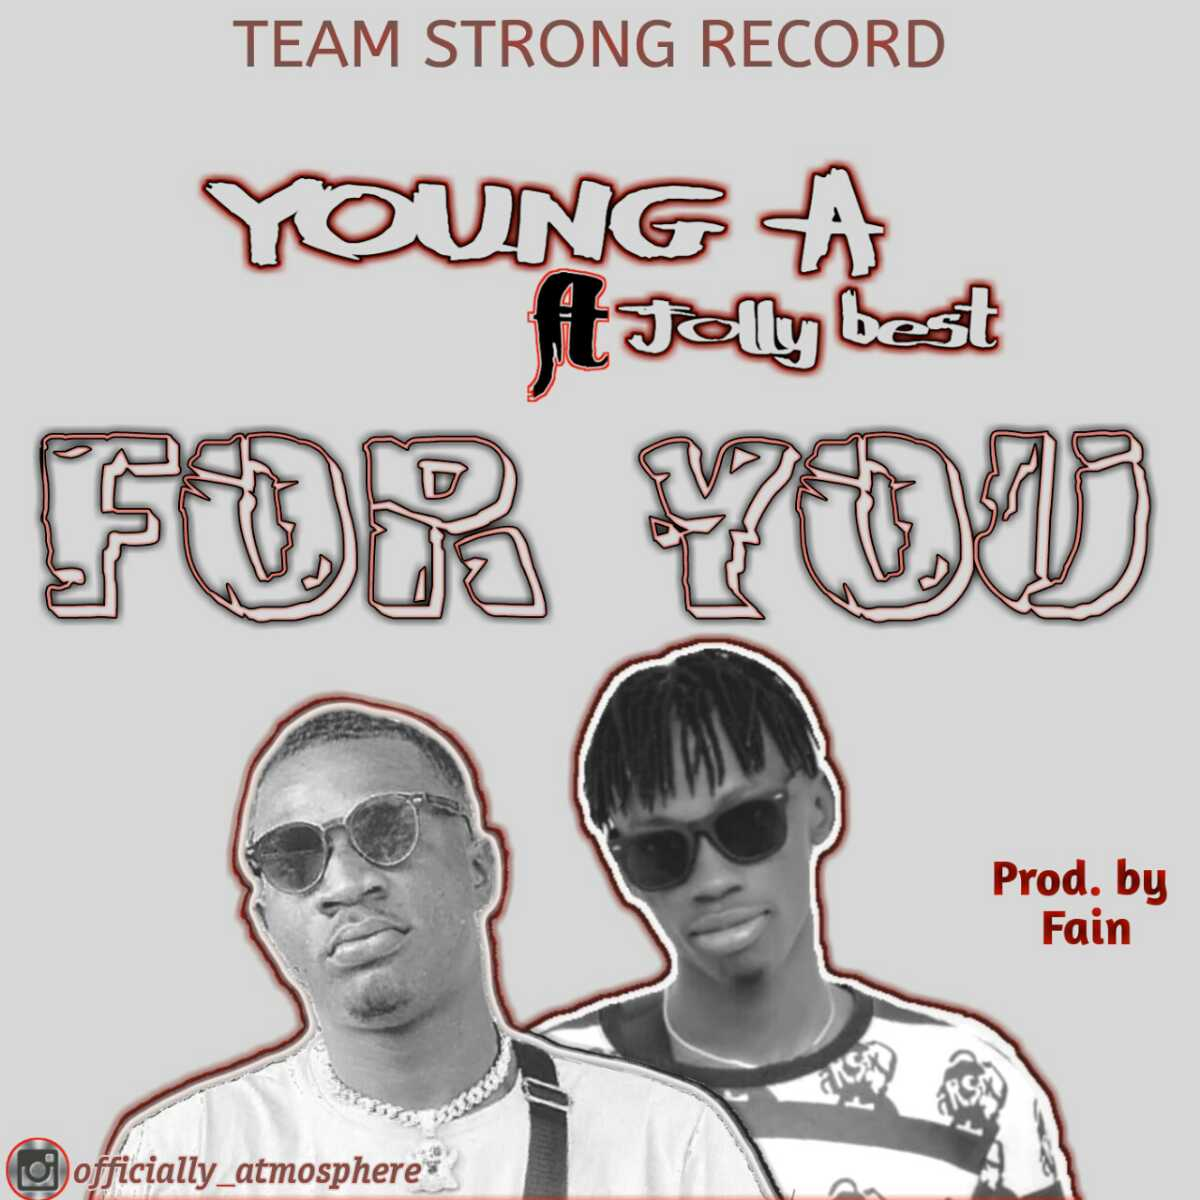 Young A - For You (feat. Jolly best)